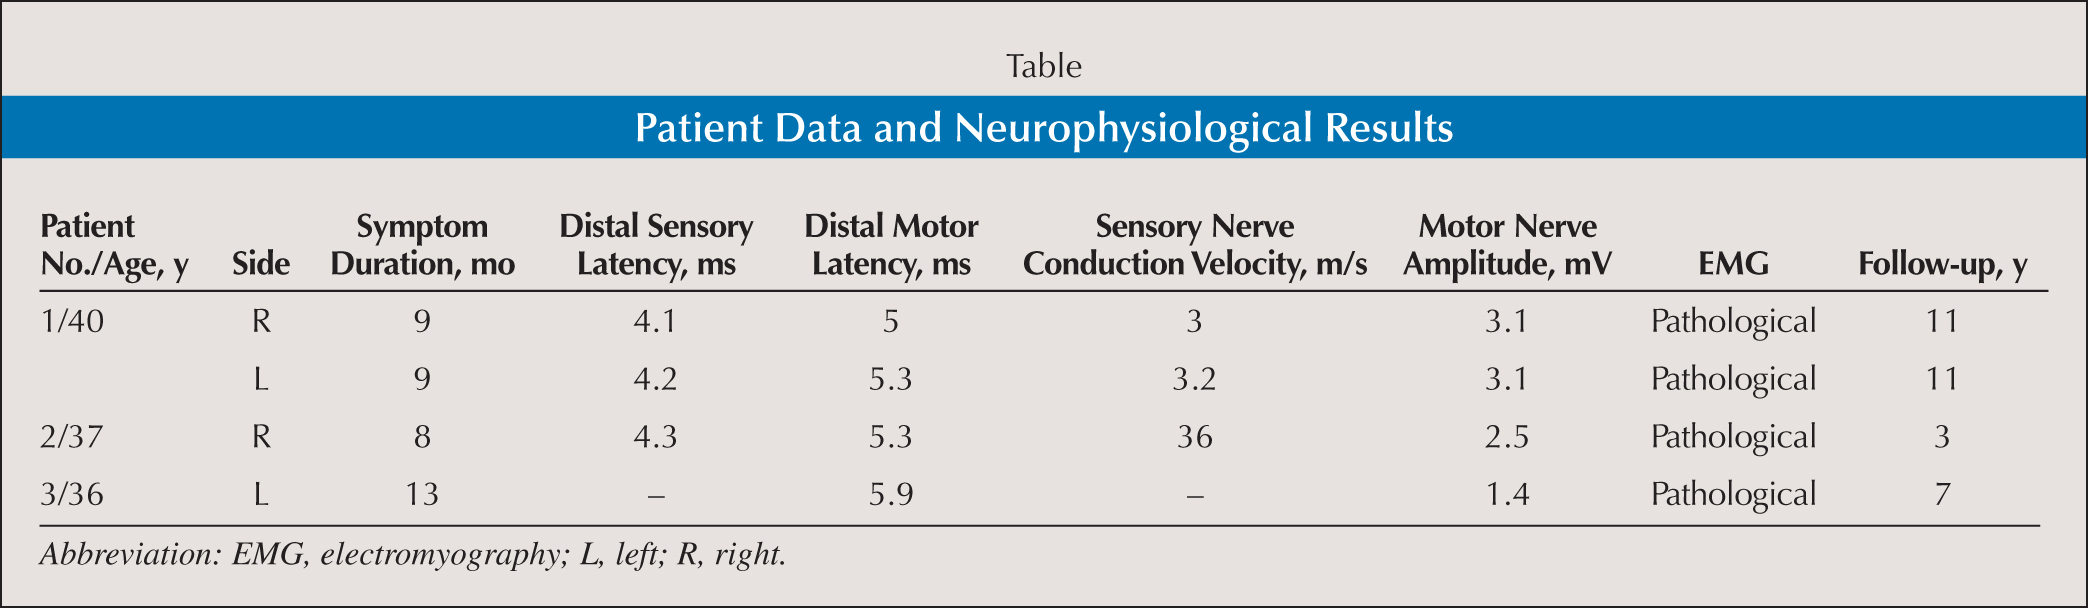 Patient Data and Neurophysiological Results